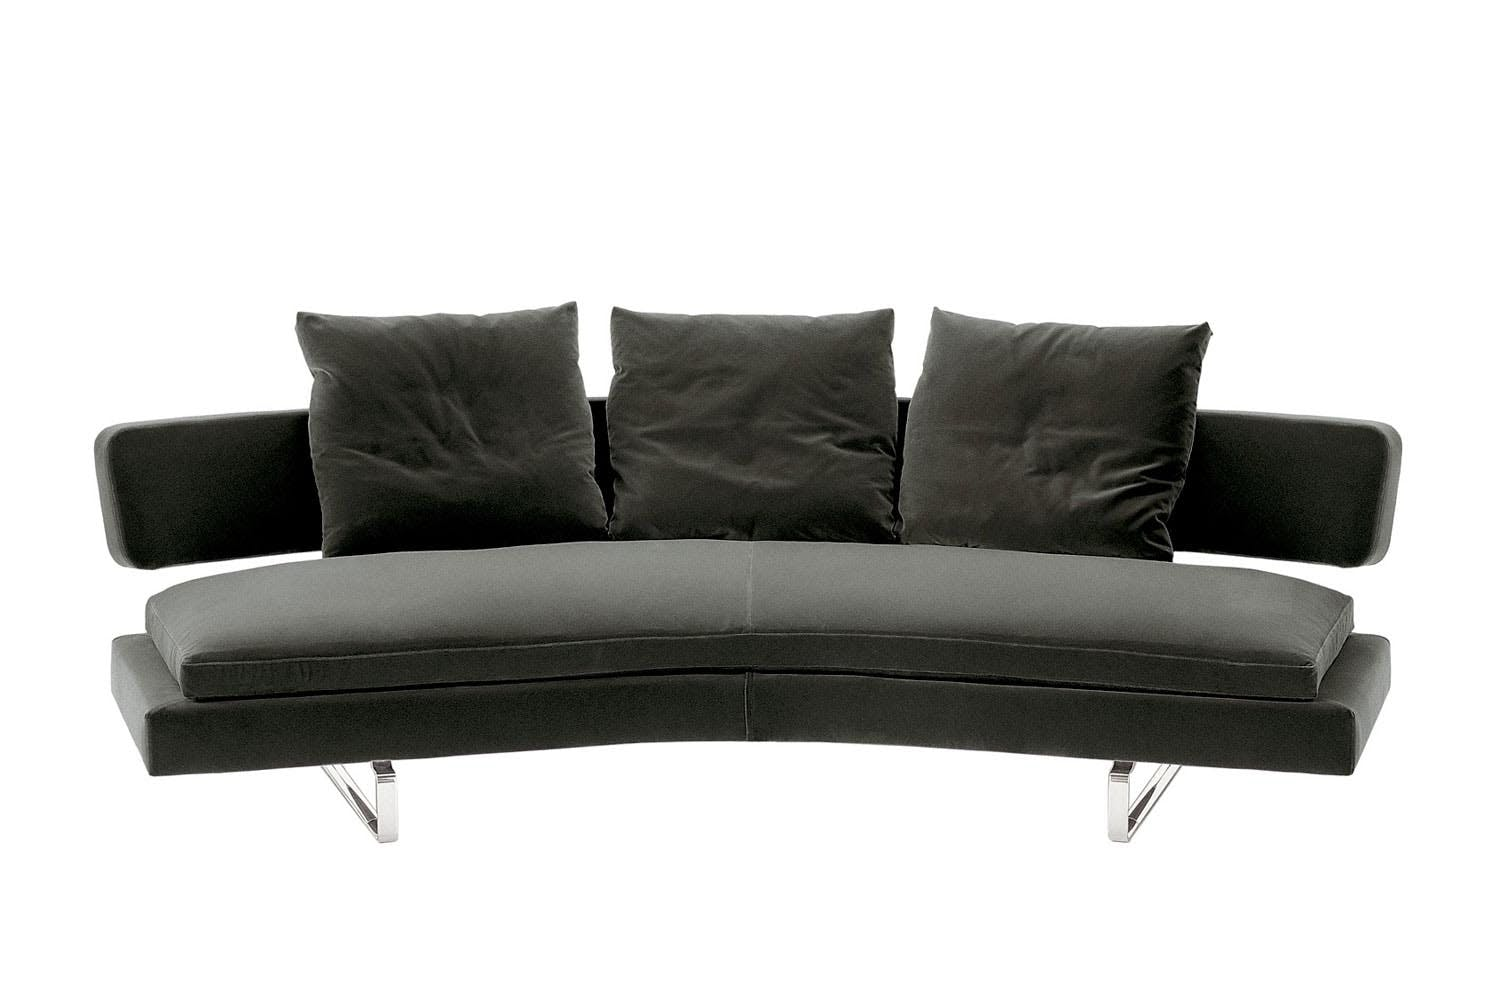 arne sofa by antonio citterio for b b italia space furniture. Black Bedroom Furniture Sets. Home Design Ideas